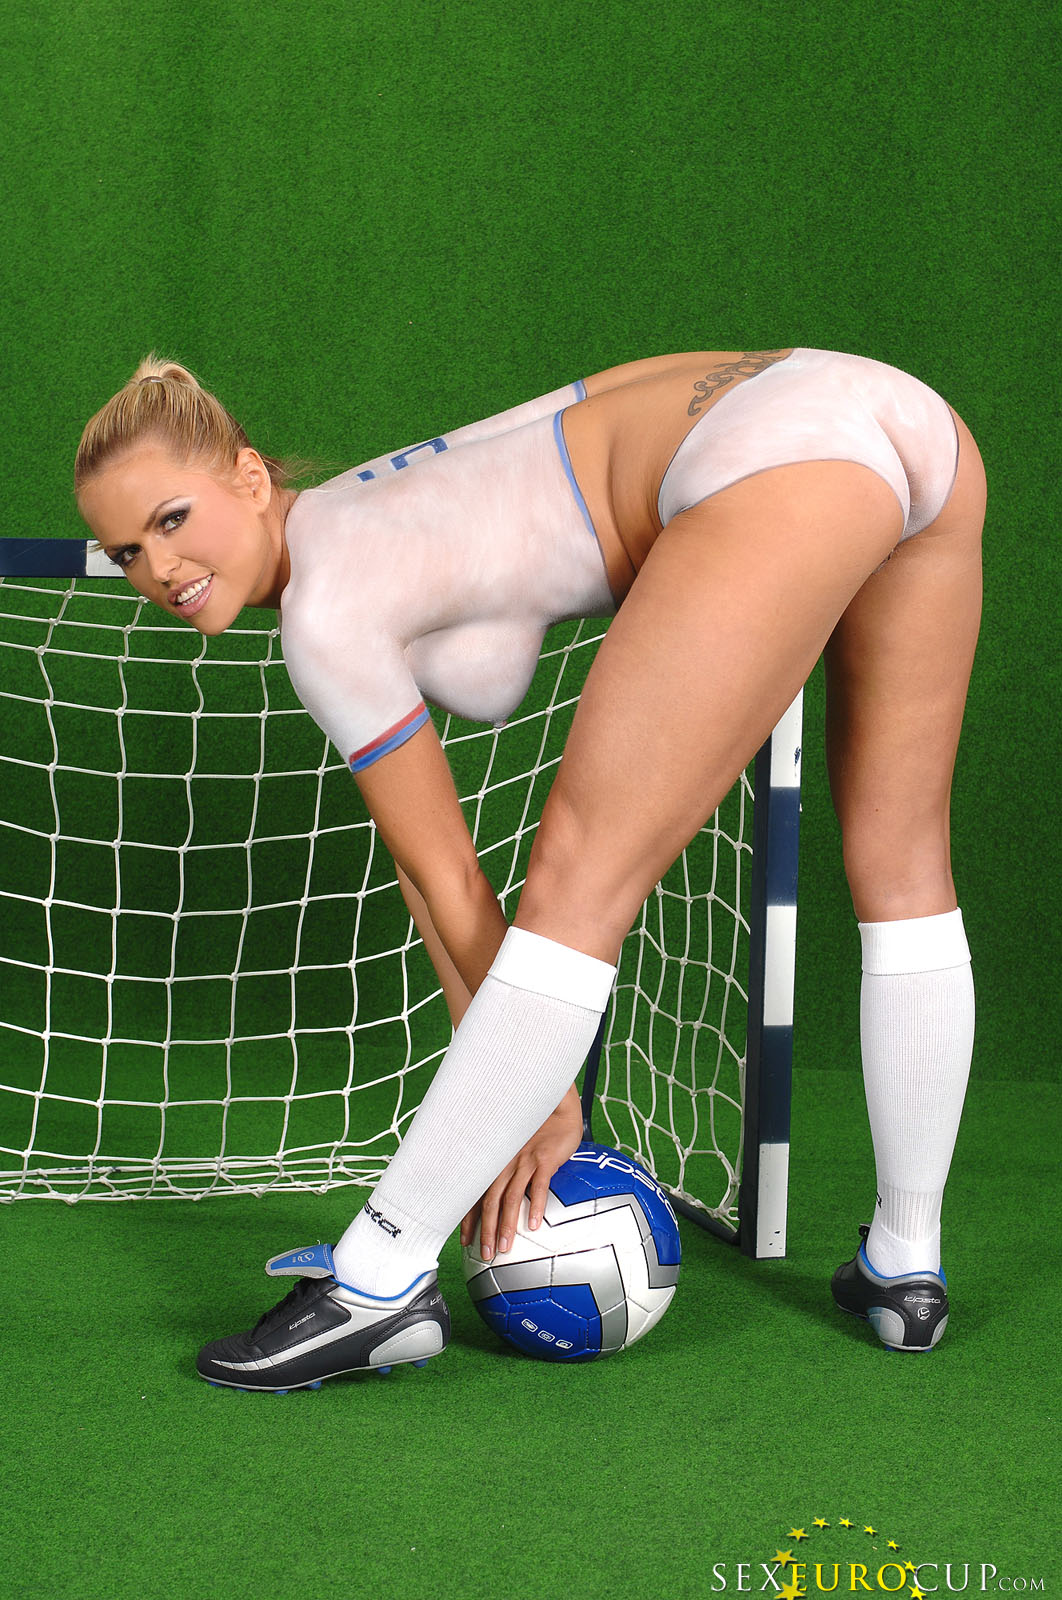 Sex Euro Cup: Damn, what a hot idea. Sexy naked girls ...